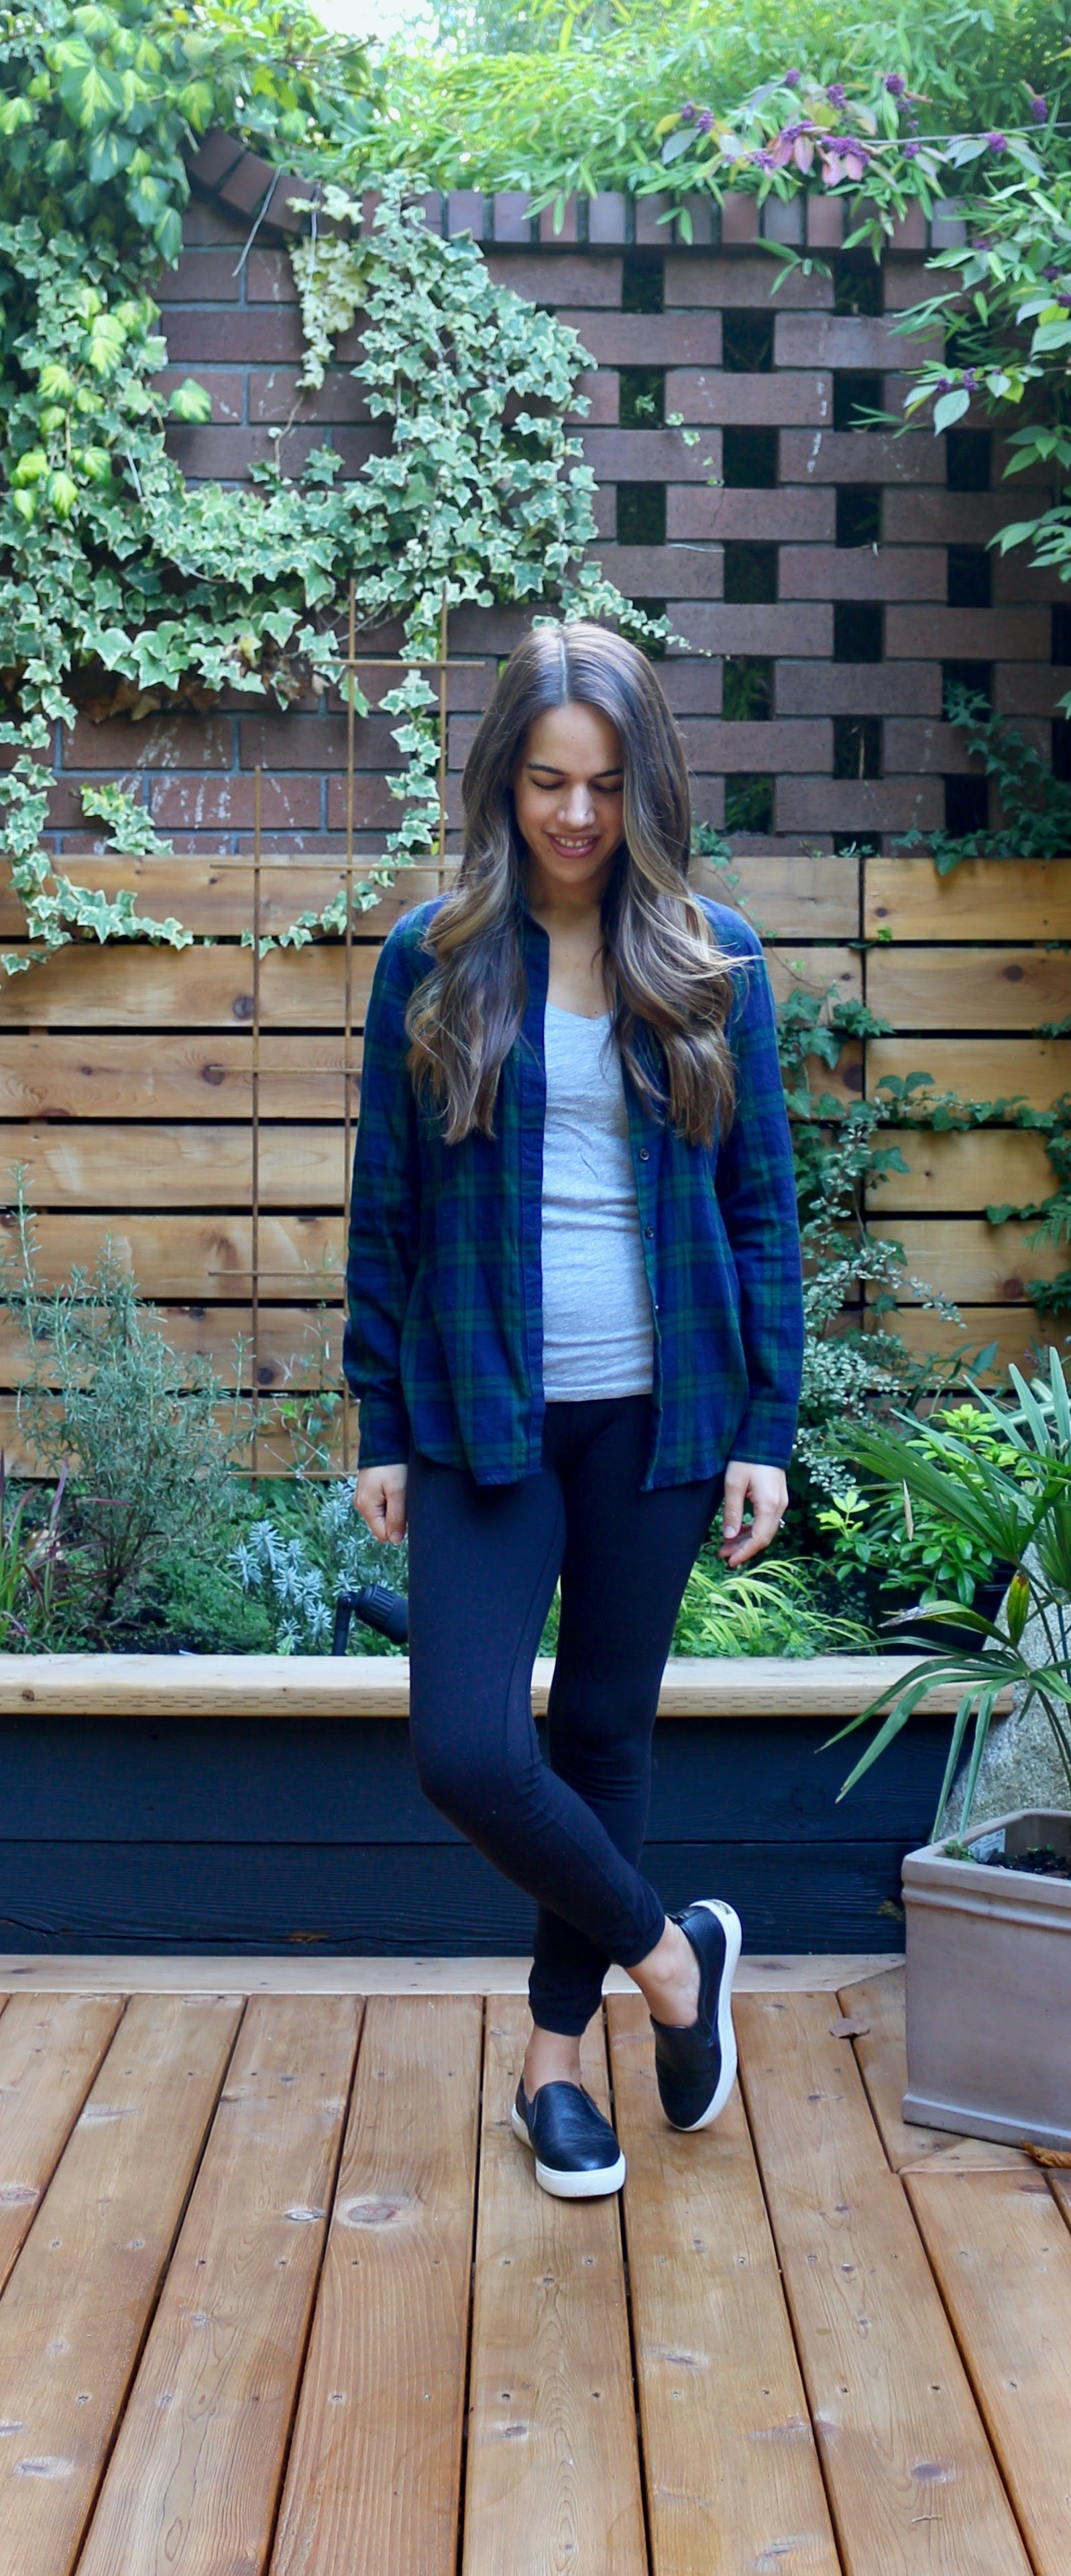 Jules in Flats - WFH Outfit - Plaid Flannel + Leggings (Business Casual Workwear on a Budget)